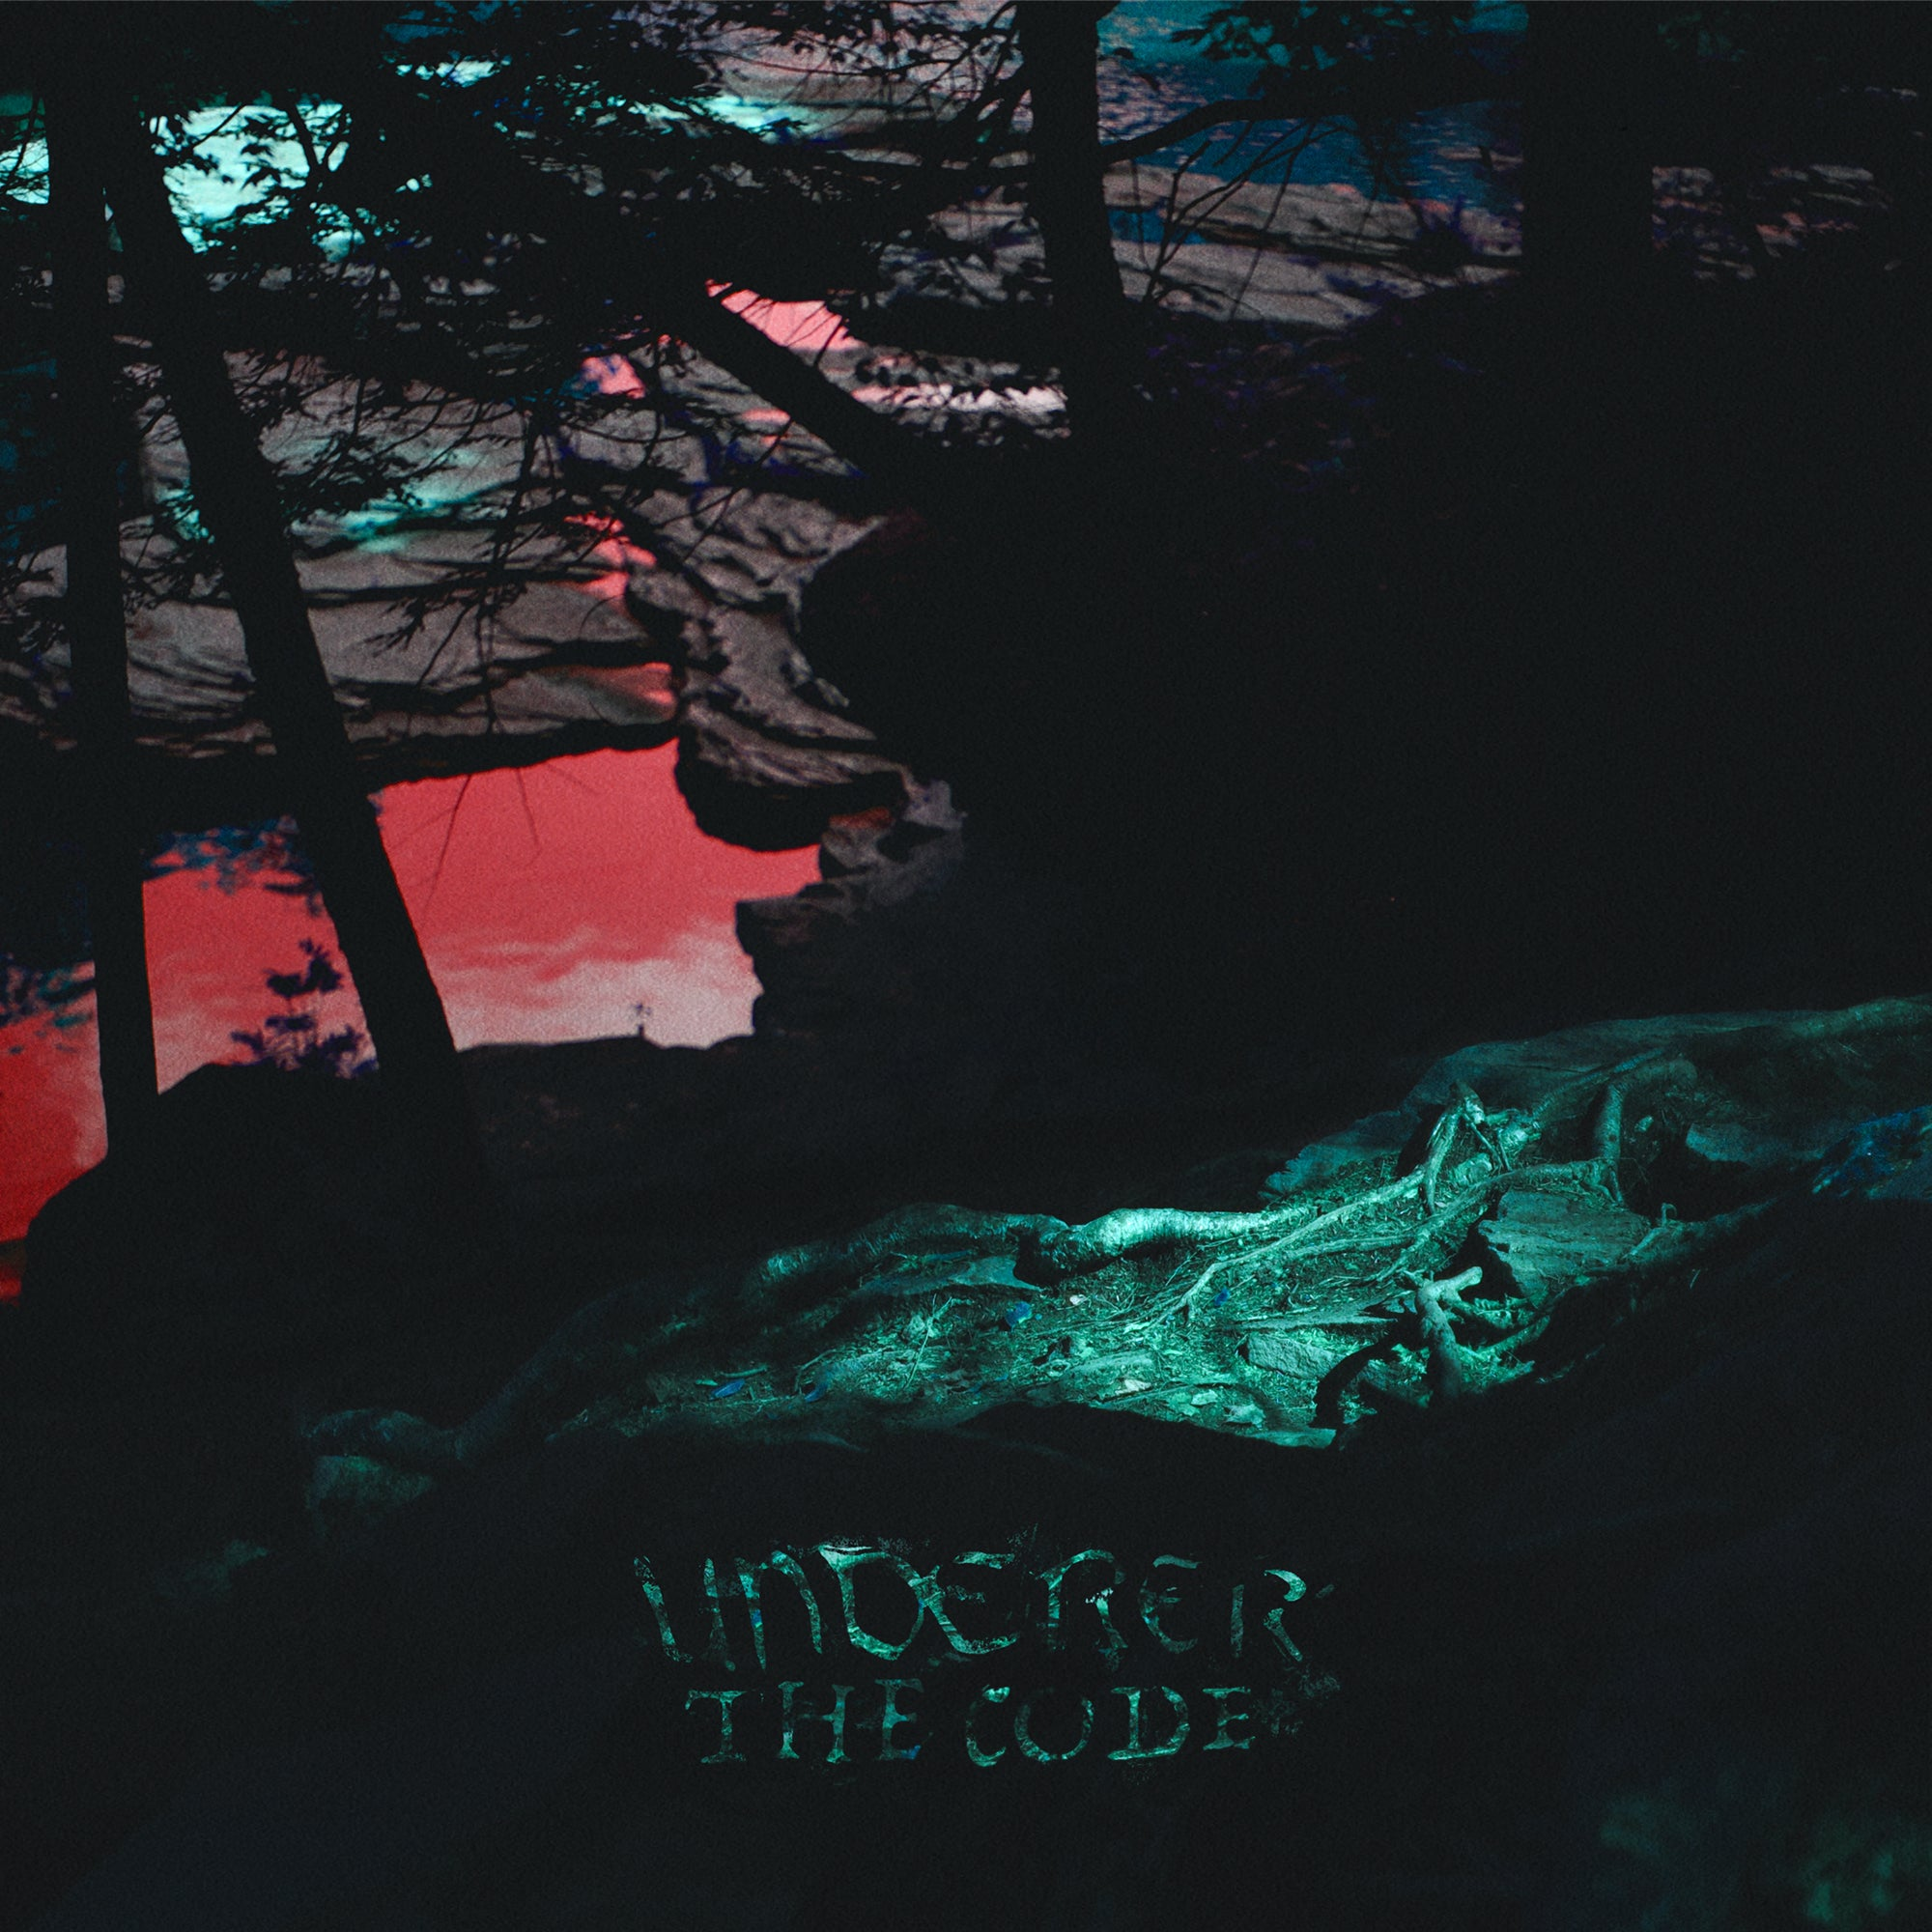 UNDERER - The Code